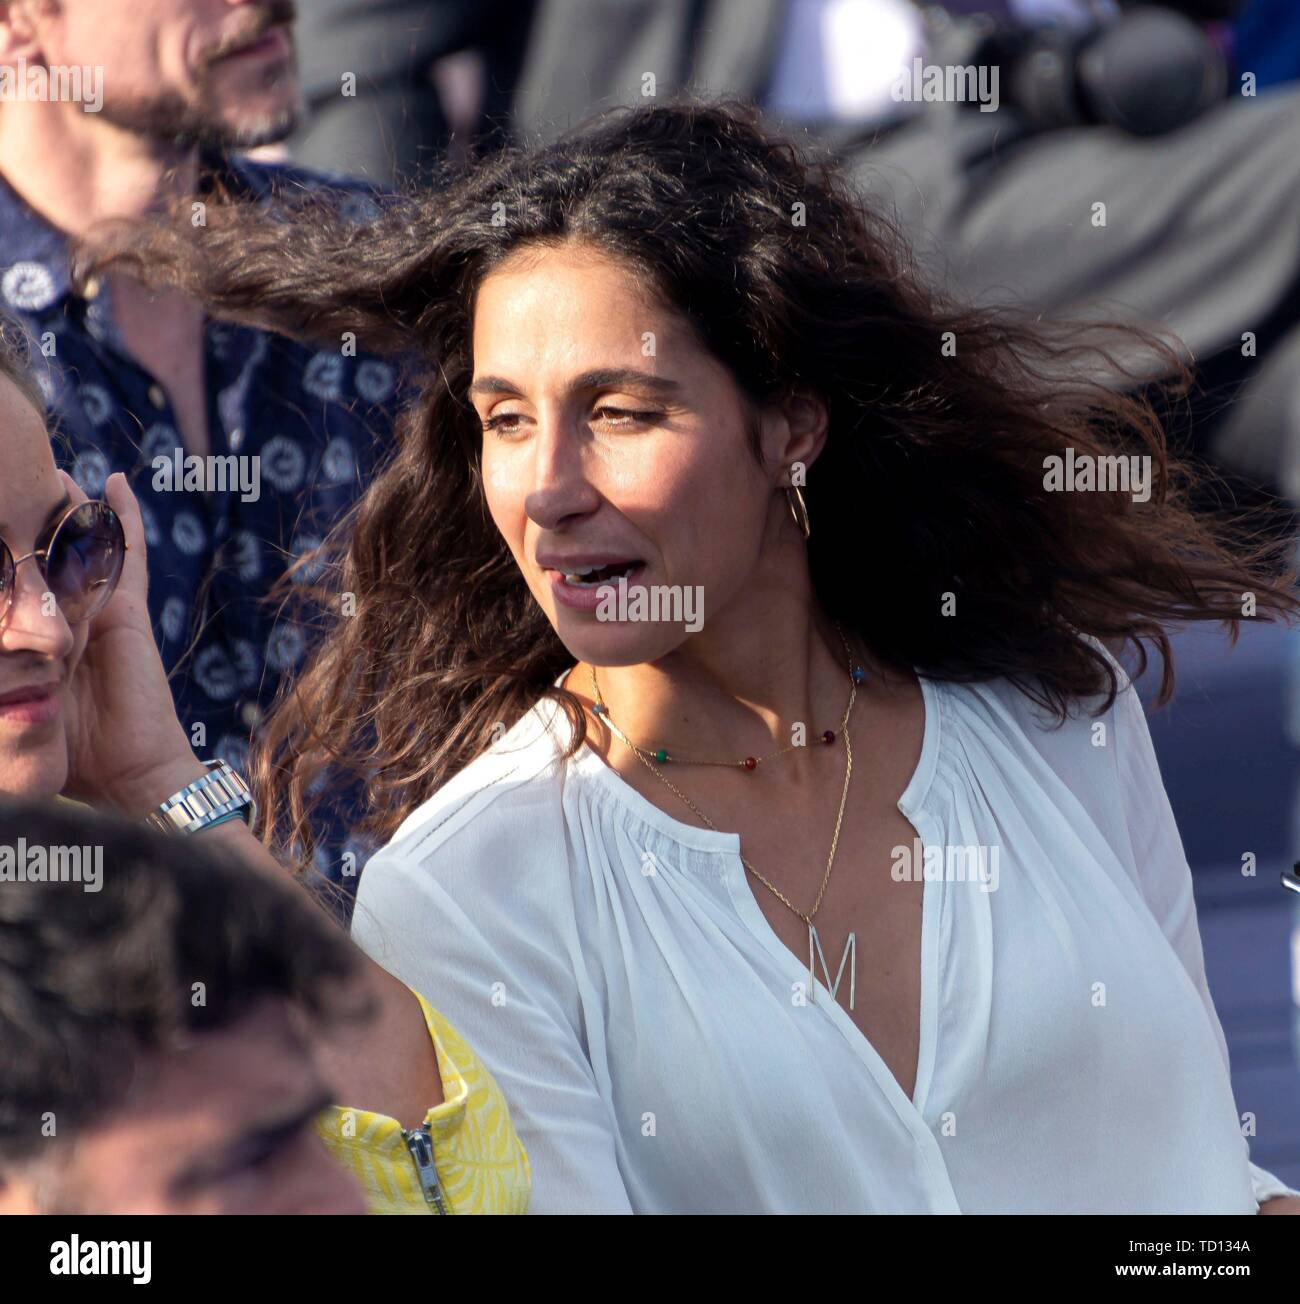 Manacor, Spain. 11th June, 2019. Xisca Perello, girlfriend of Spanish tennis player Rafa Nada, attends the graduation ceremony of Rafa Nadal Academy, students of American International School of Mallorca, in Manacor, Balearic Islands, Spain, 11 June 2019. Credit: CATI CLADERA/EFE/Alamy Live News Stock Photo